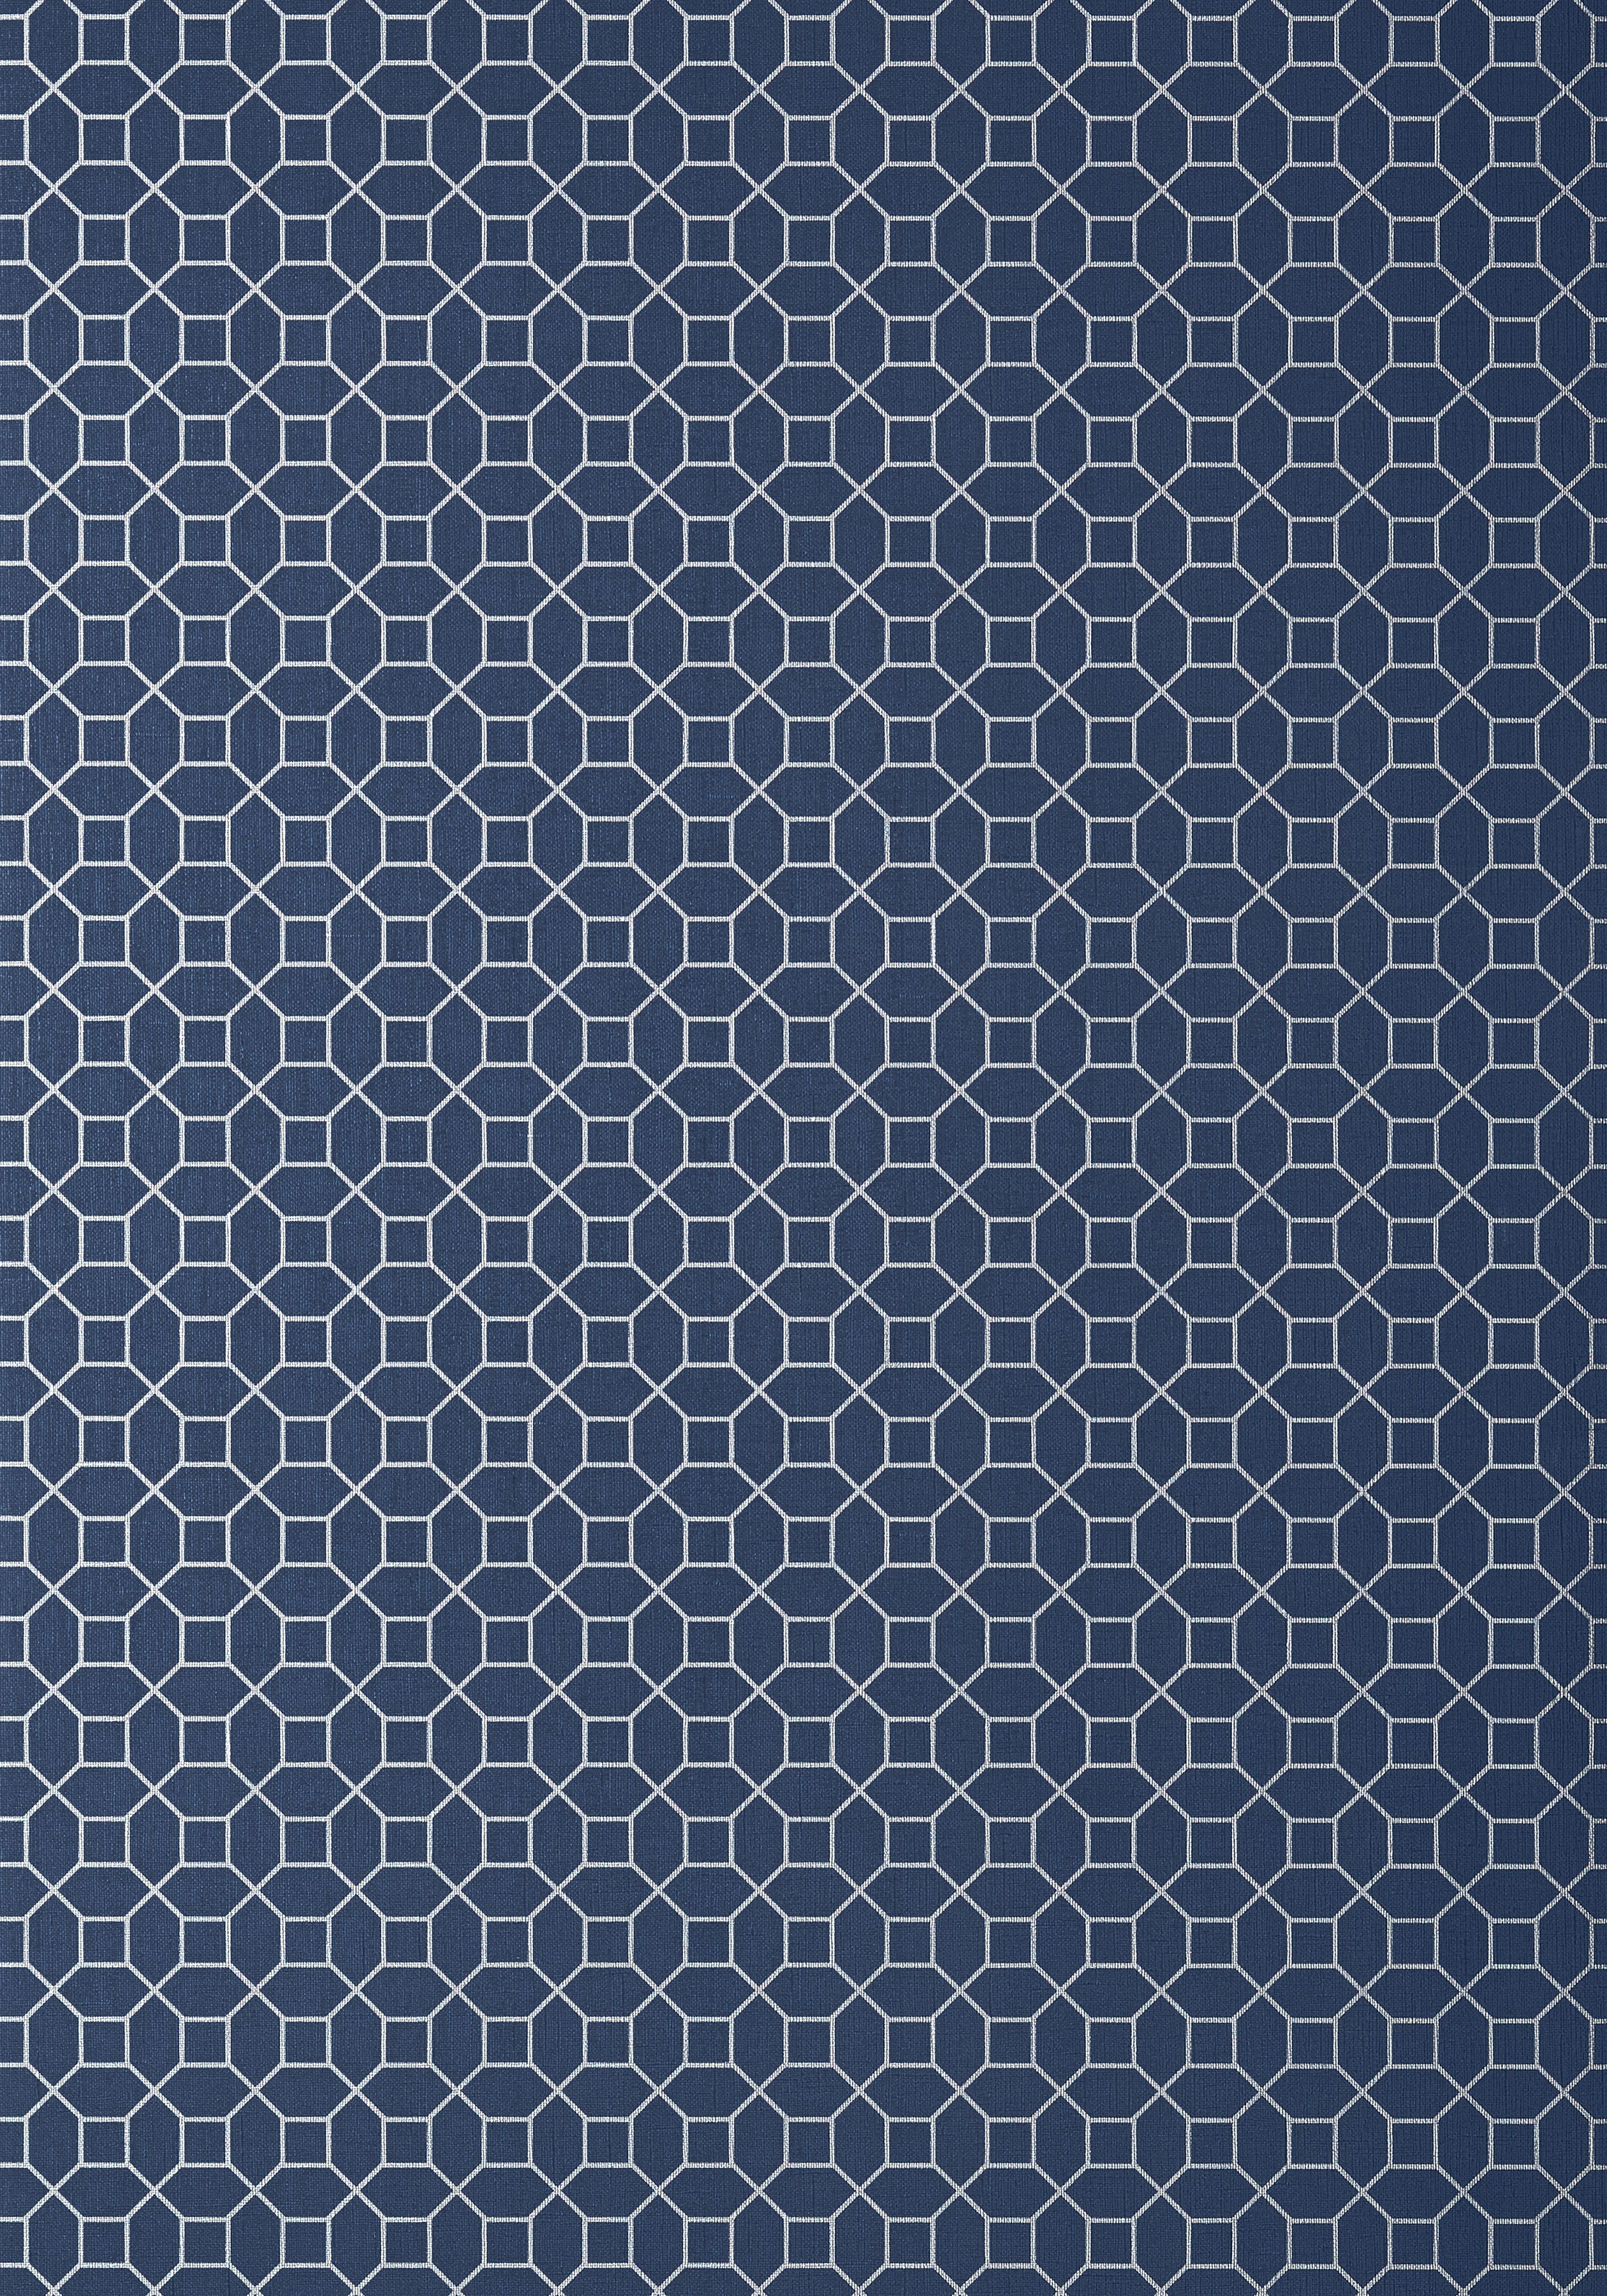 FARRIS, Silver on Navy, T11027, Collection Geometric